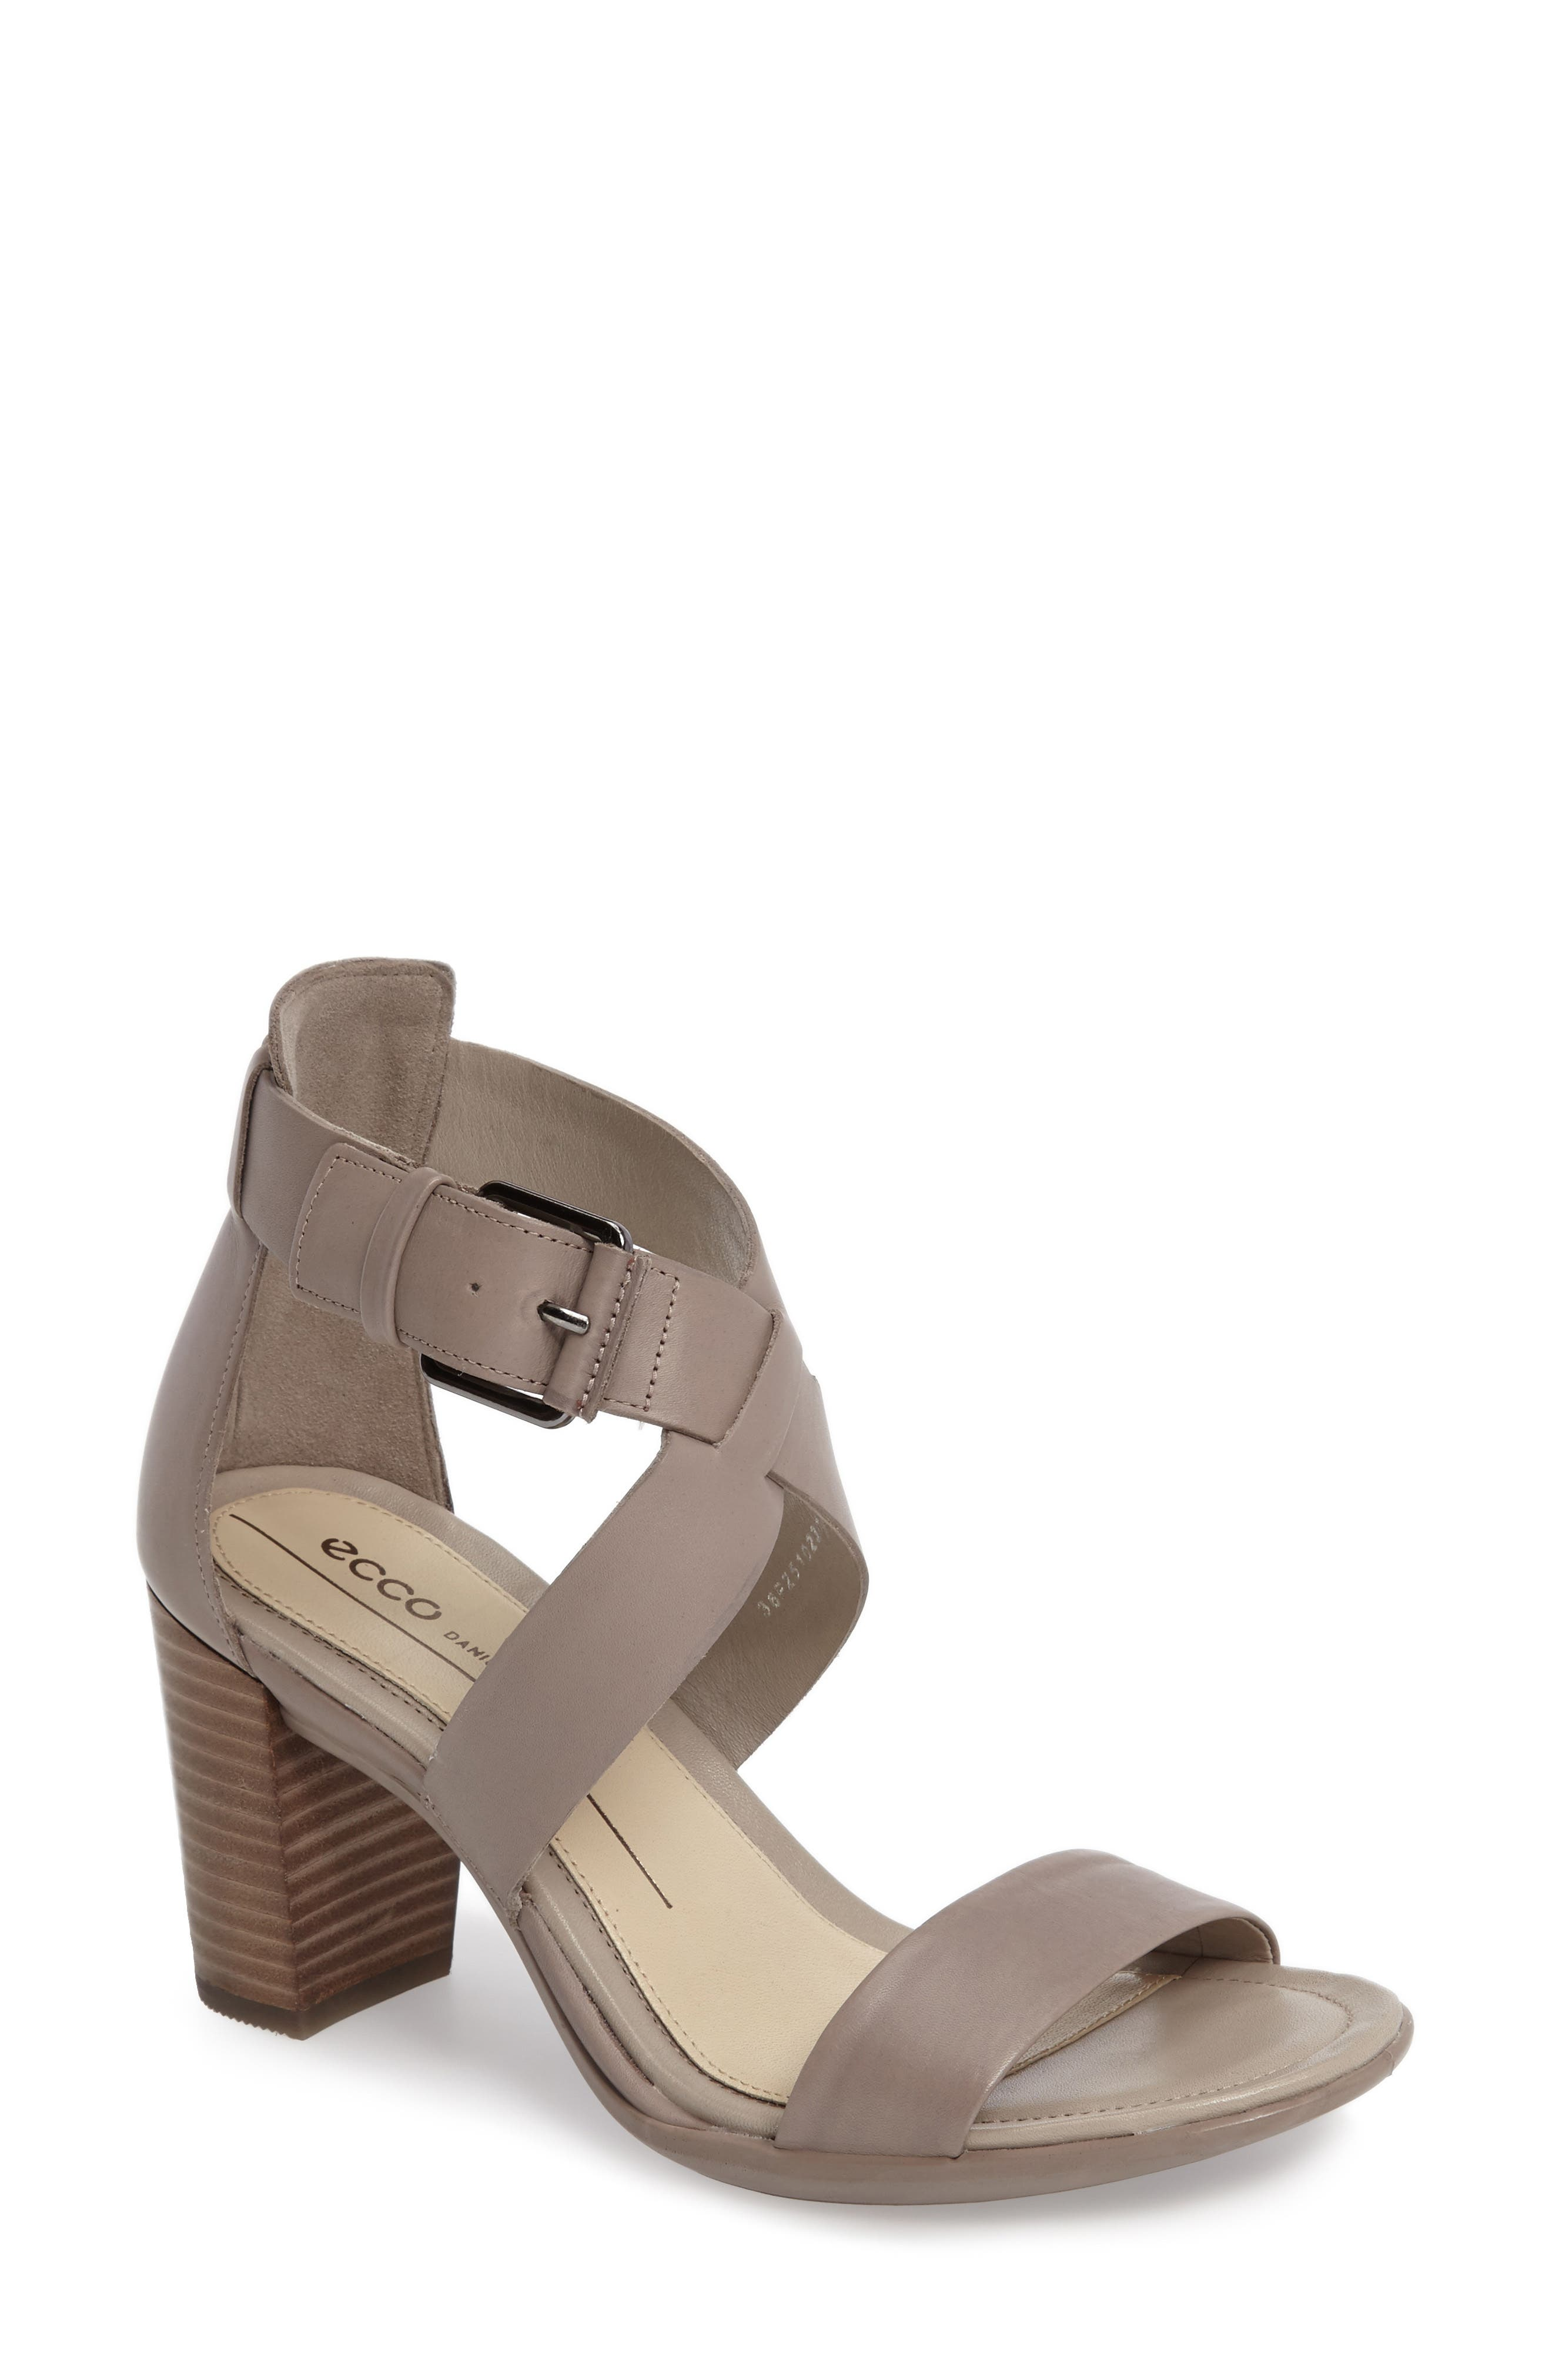 Touch 65 Sandal,                         Main,                         color, Moon Rock Leather